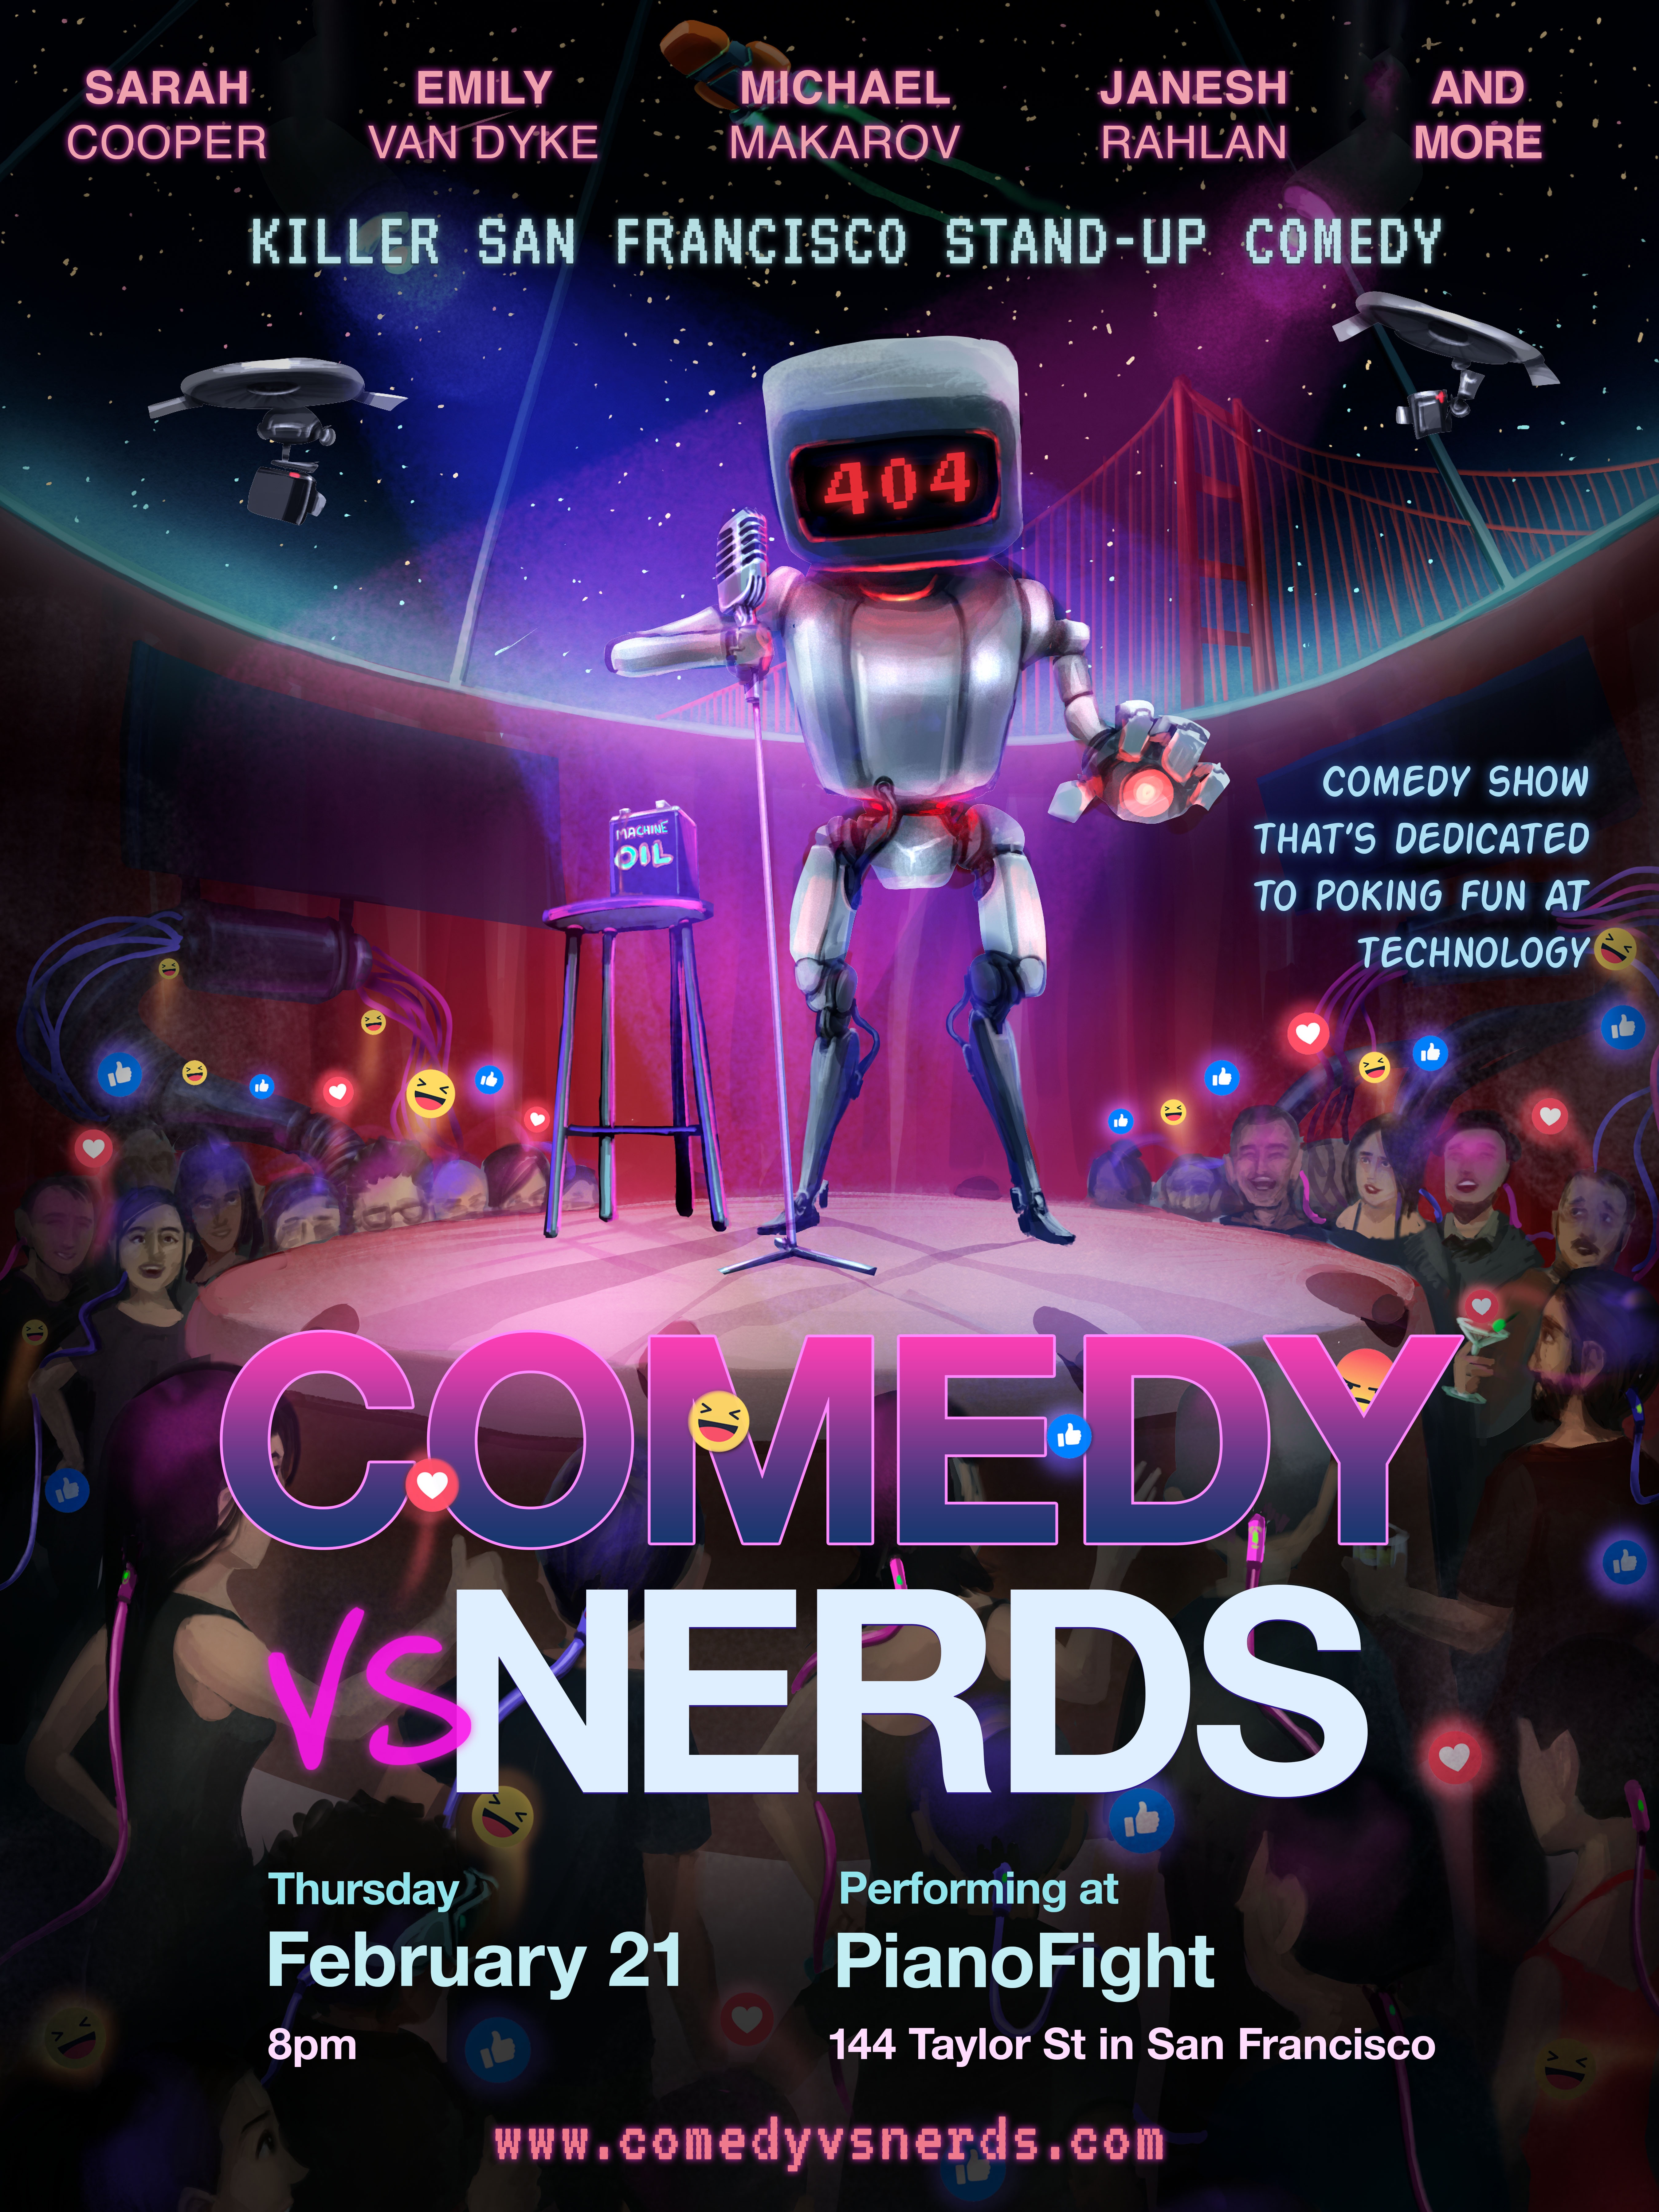 Comedy vs. Nerds poster